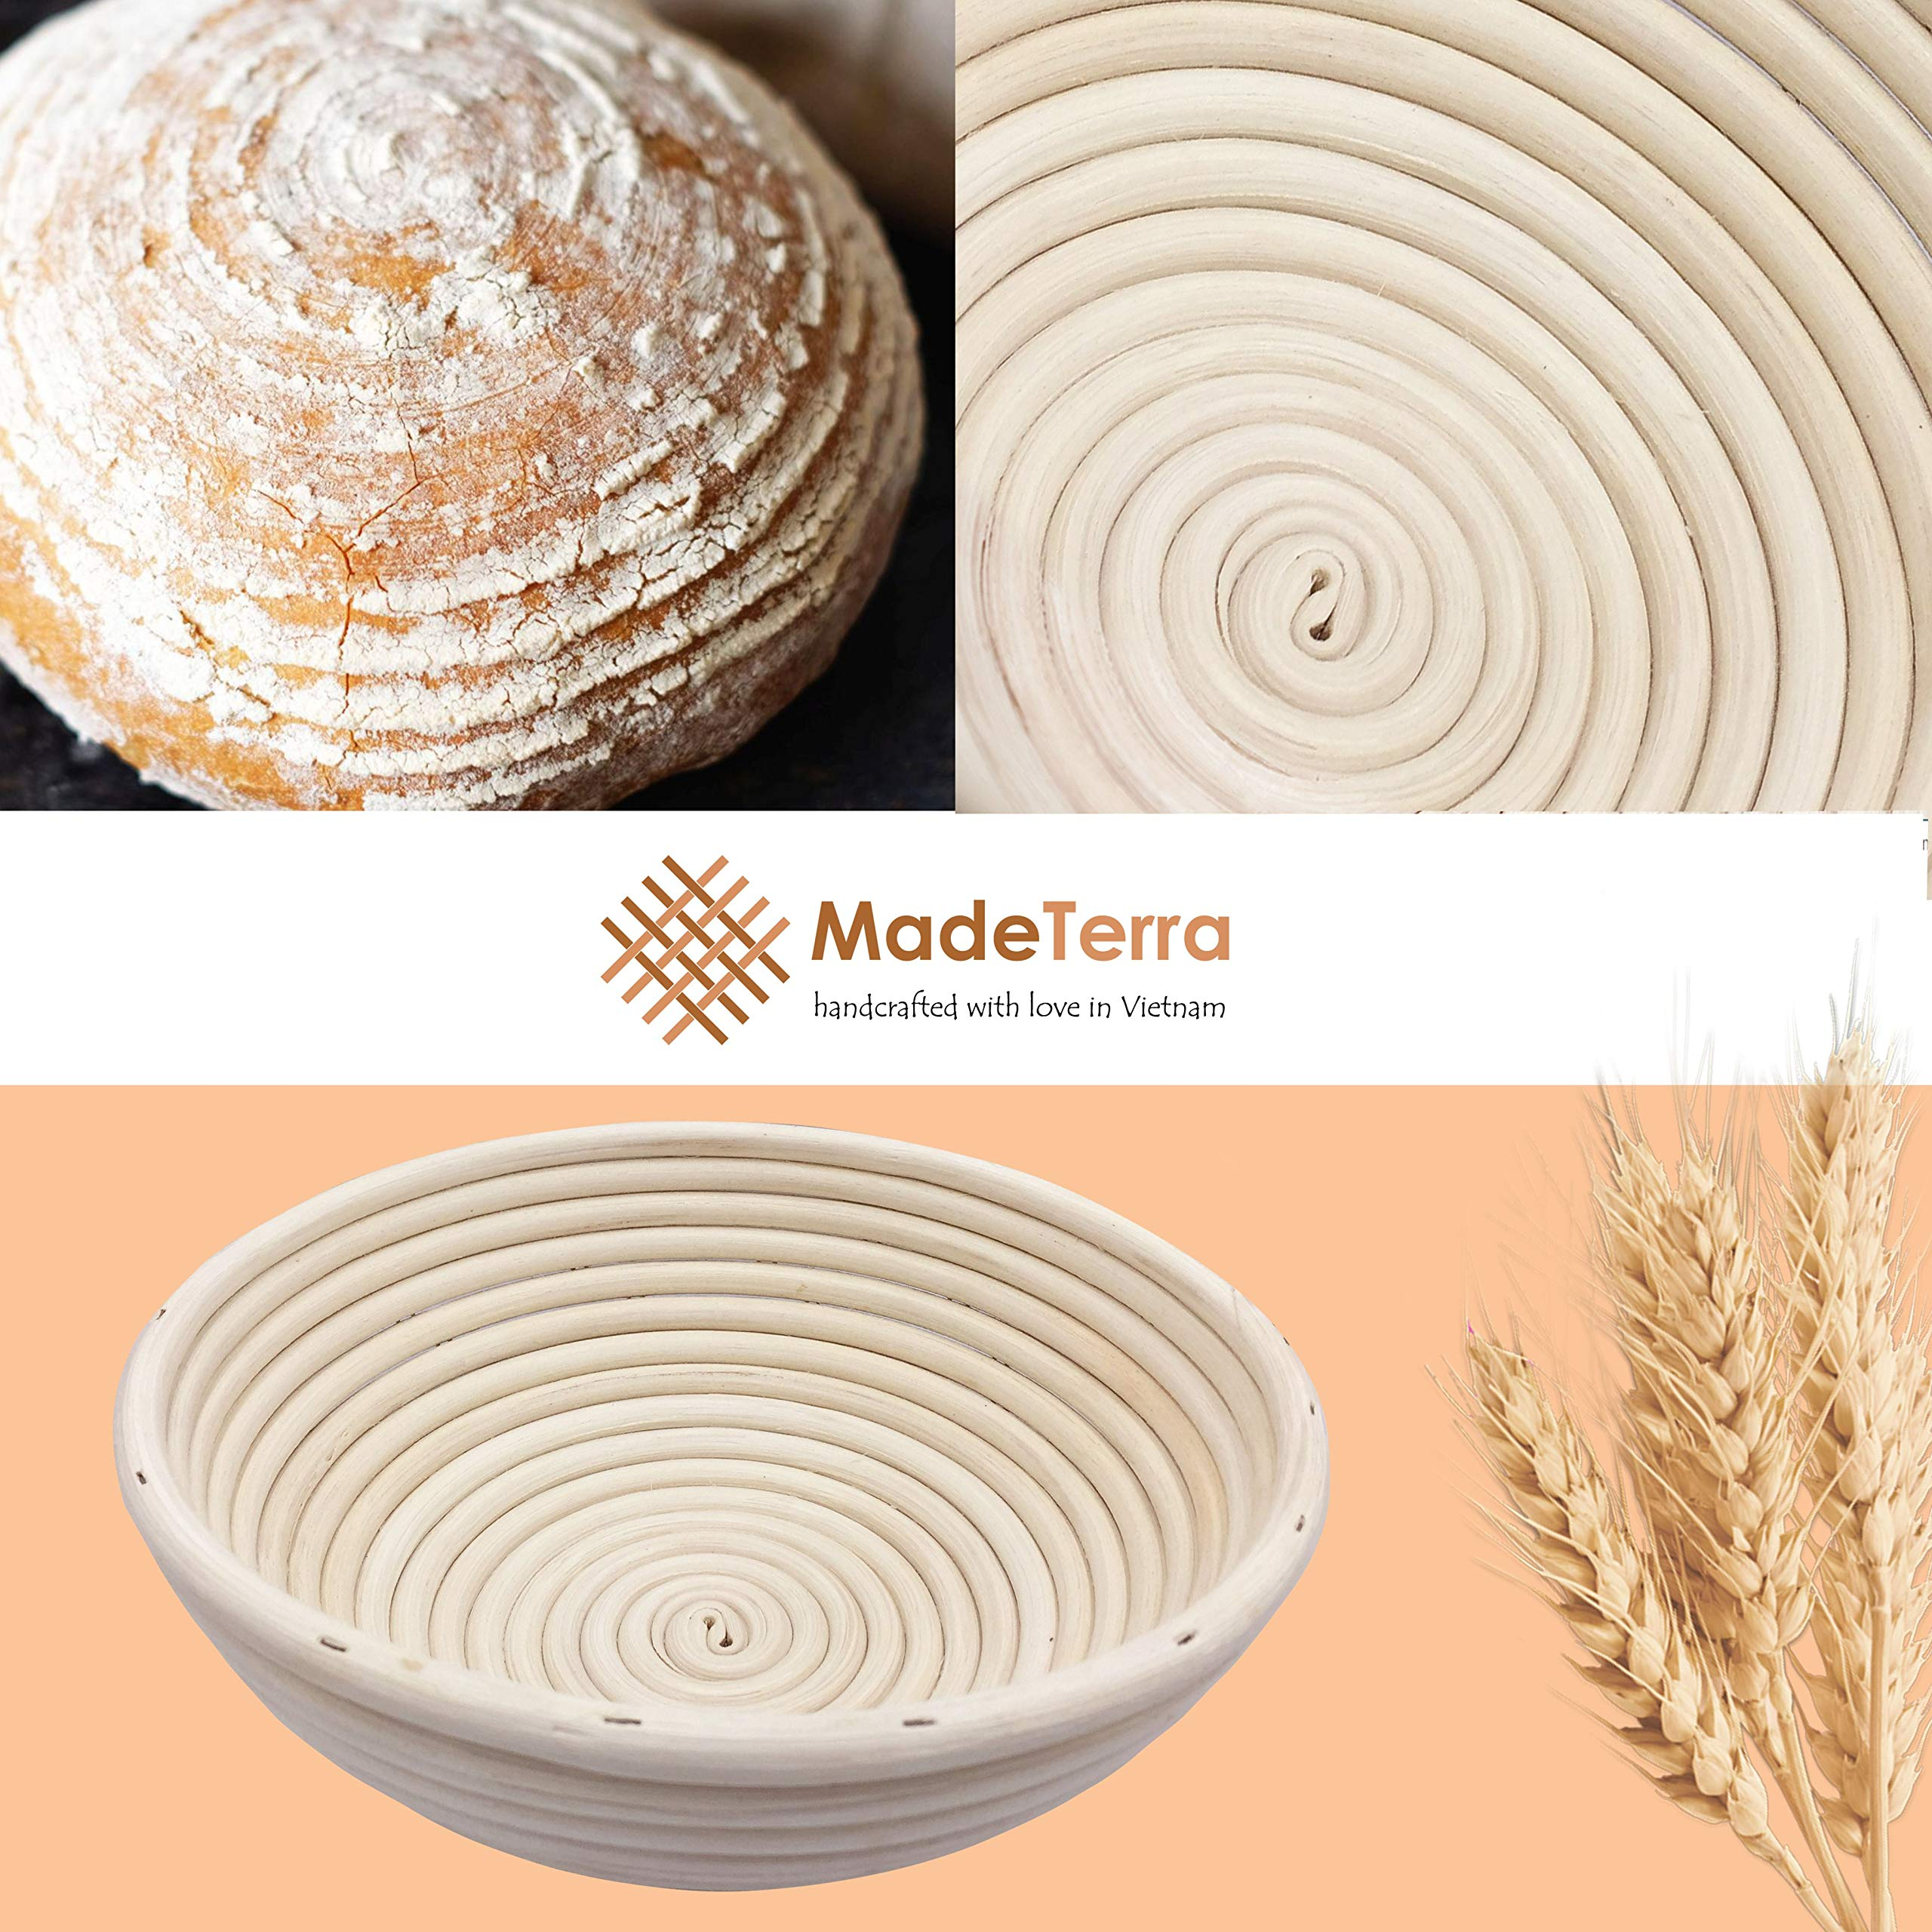 9 inch Banneton Proofing Baskets for Sourdough Bread | Wicker Round Brotform Set with Bamboo Dough Scraper & Cloth Liners | Food-Safe Cane Bread Proofer for Rising (3 Pack 9'' Round Bannetons) by Made Terra (Image #2)